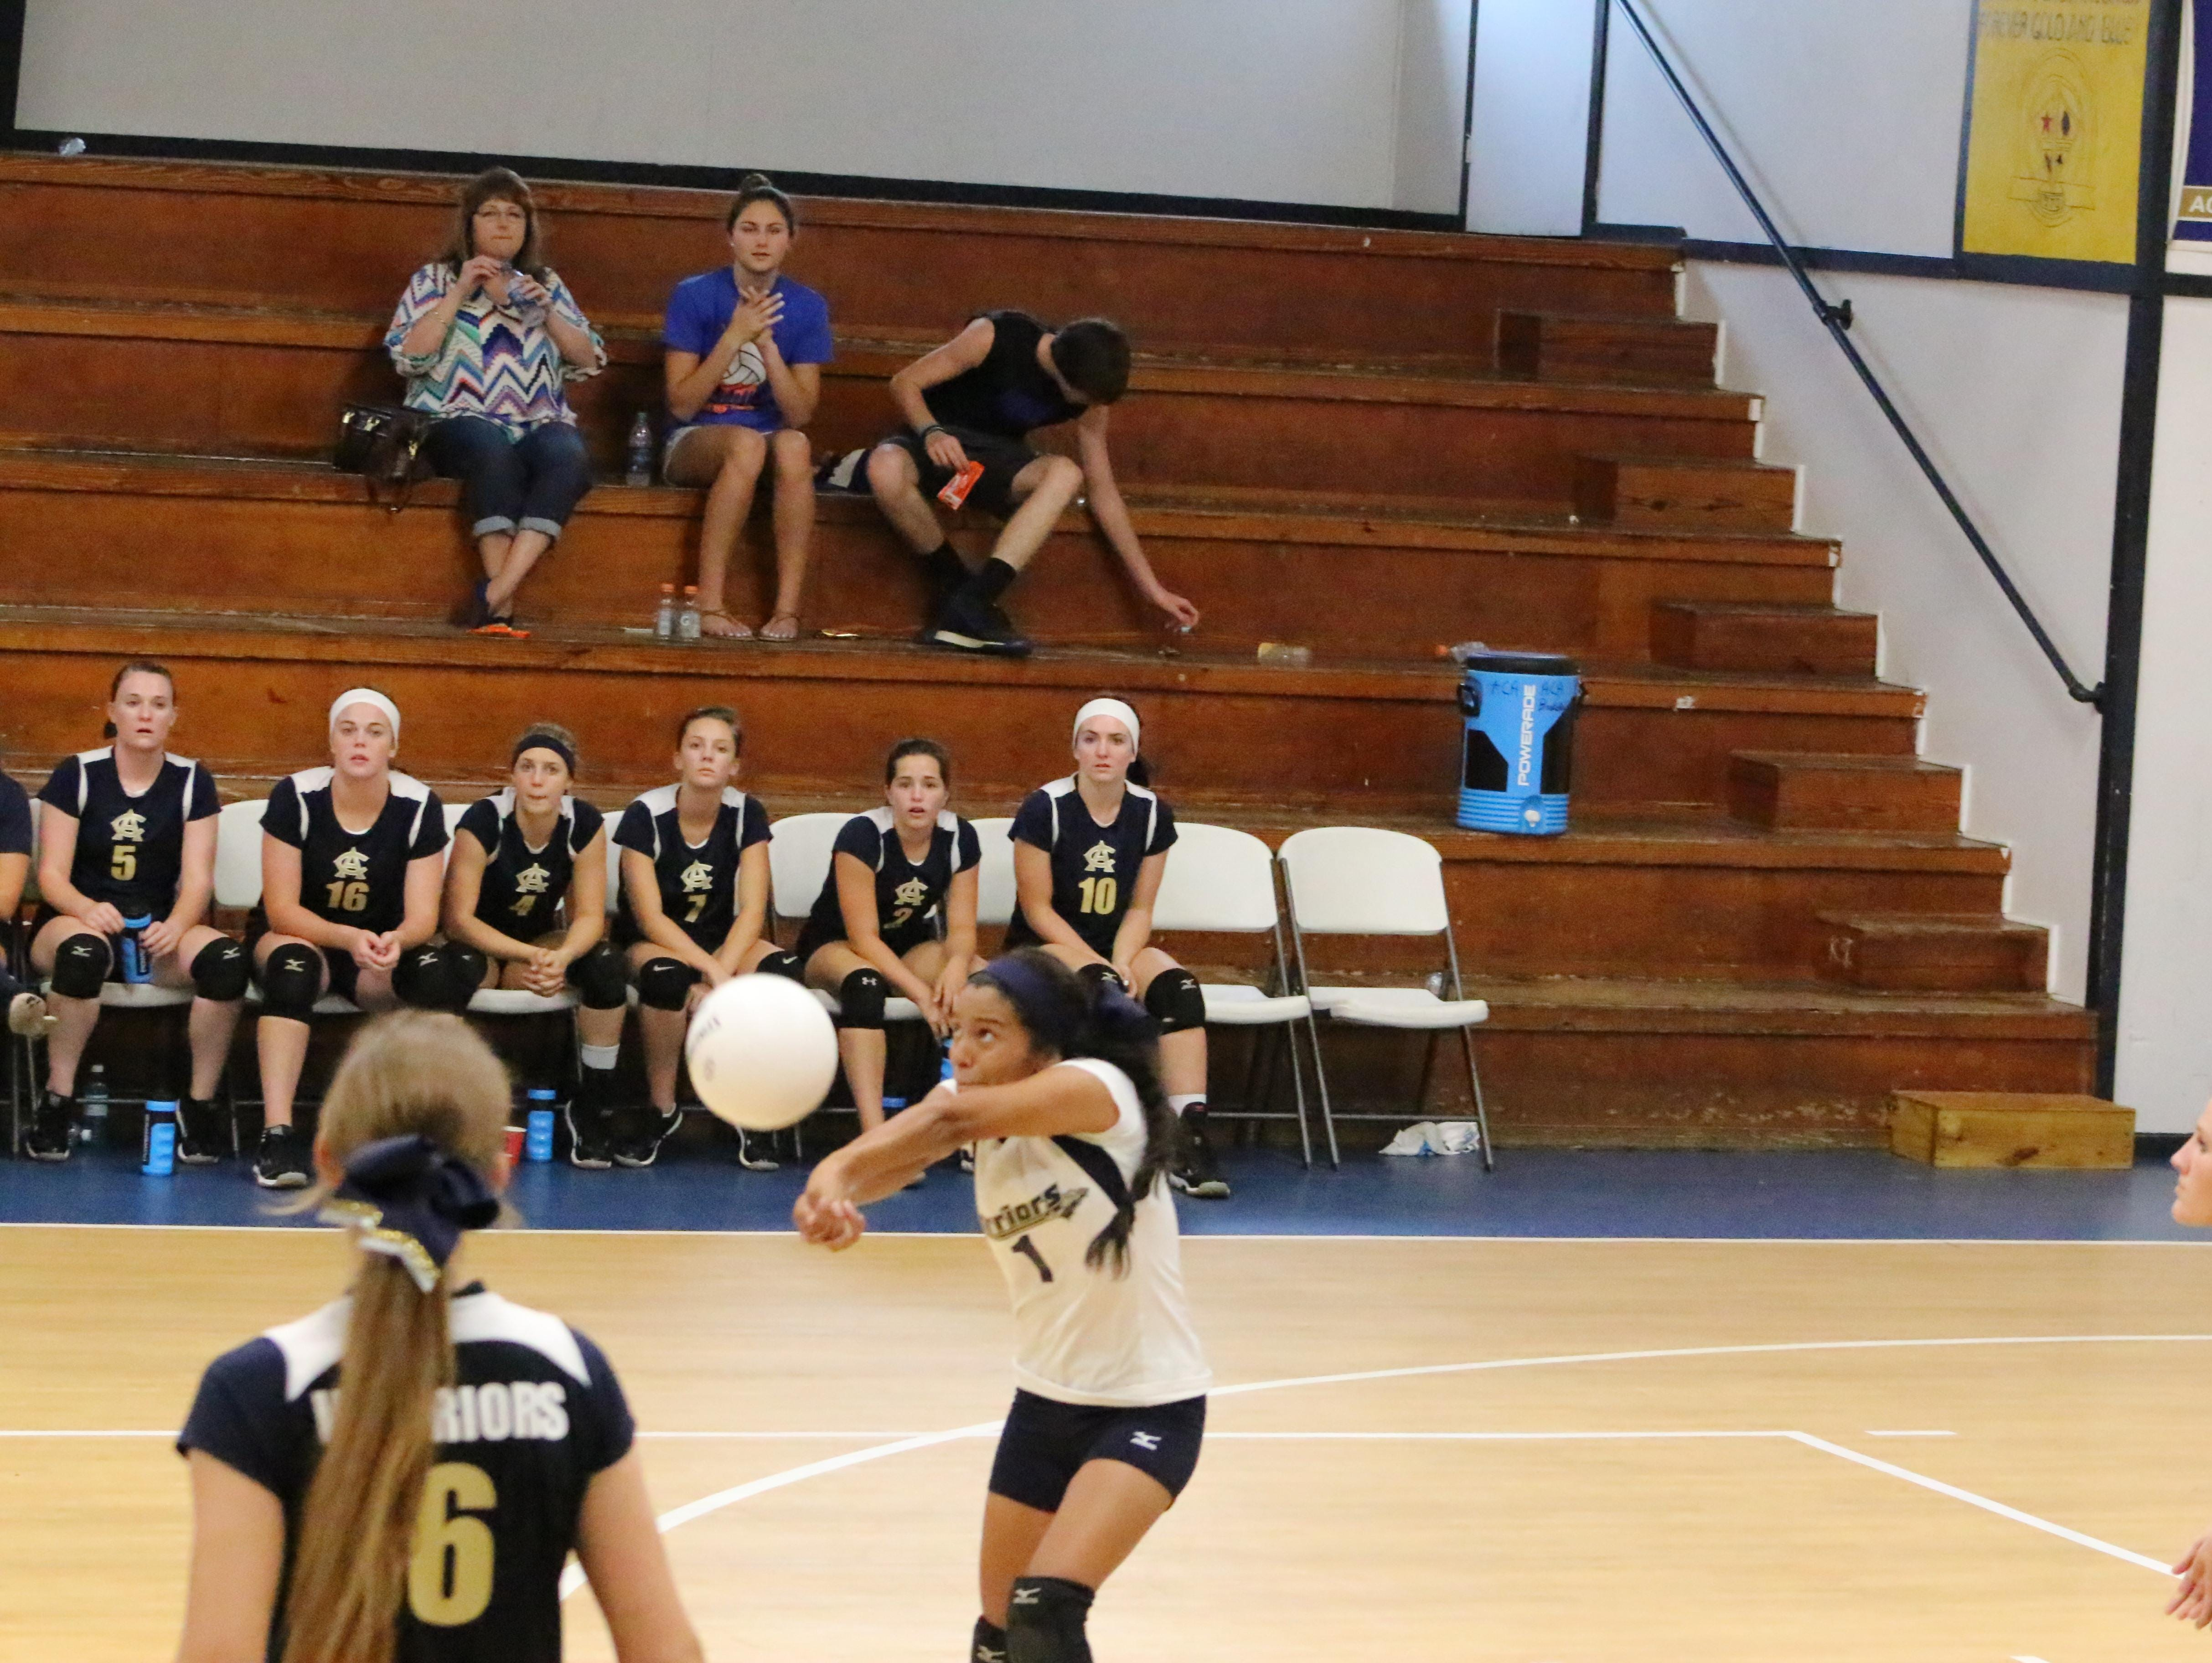 Aucilla Christian libero Natalie Vasquez goes for a dig in a recent game. The Warriors have volleyball for the first time and secured a first win over Tallavana Christian.